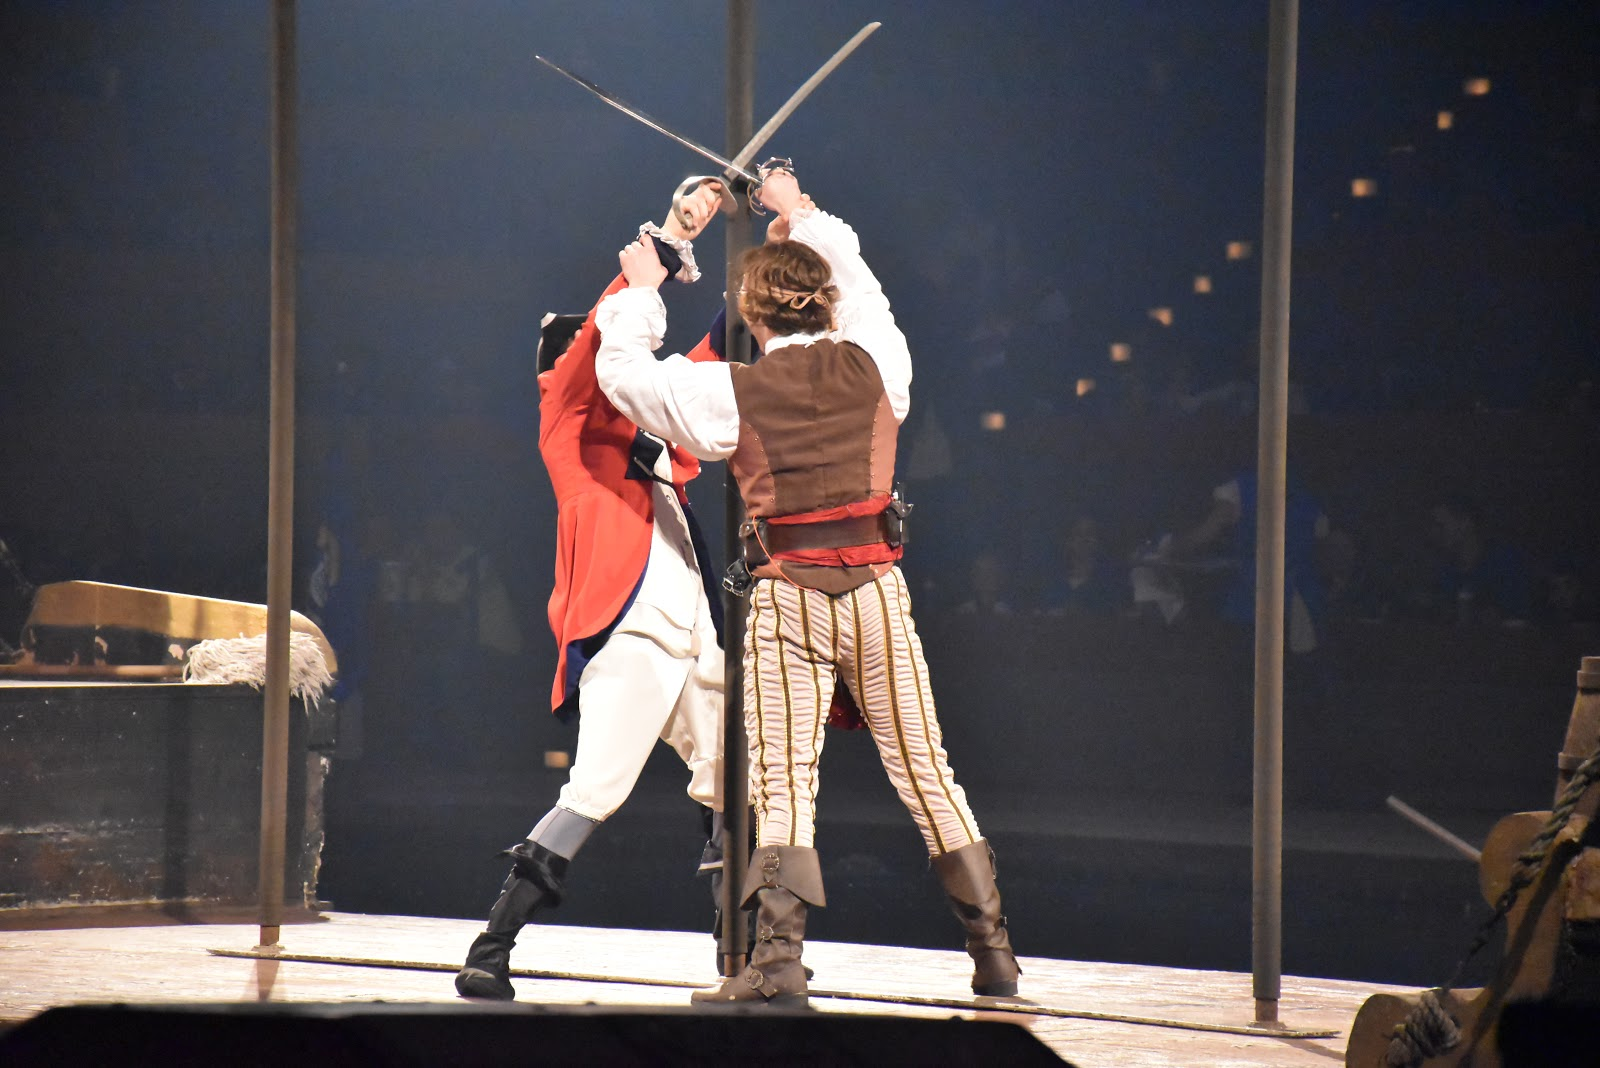 Go on a Thrilling Adventure at the Pirates Voyage Dinner and Show in Myrtle Beach